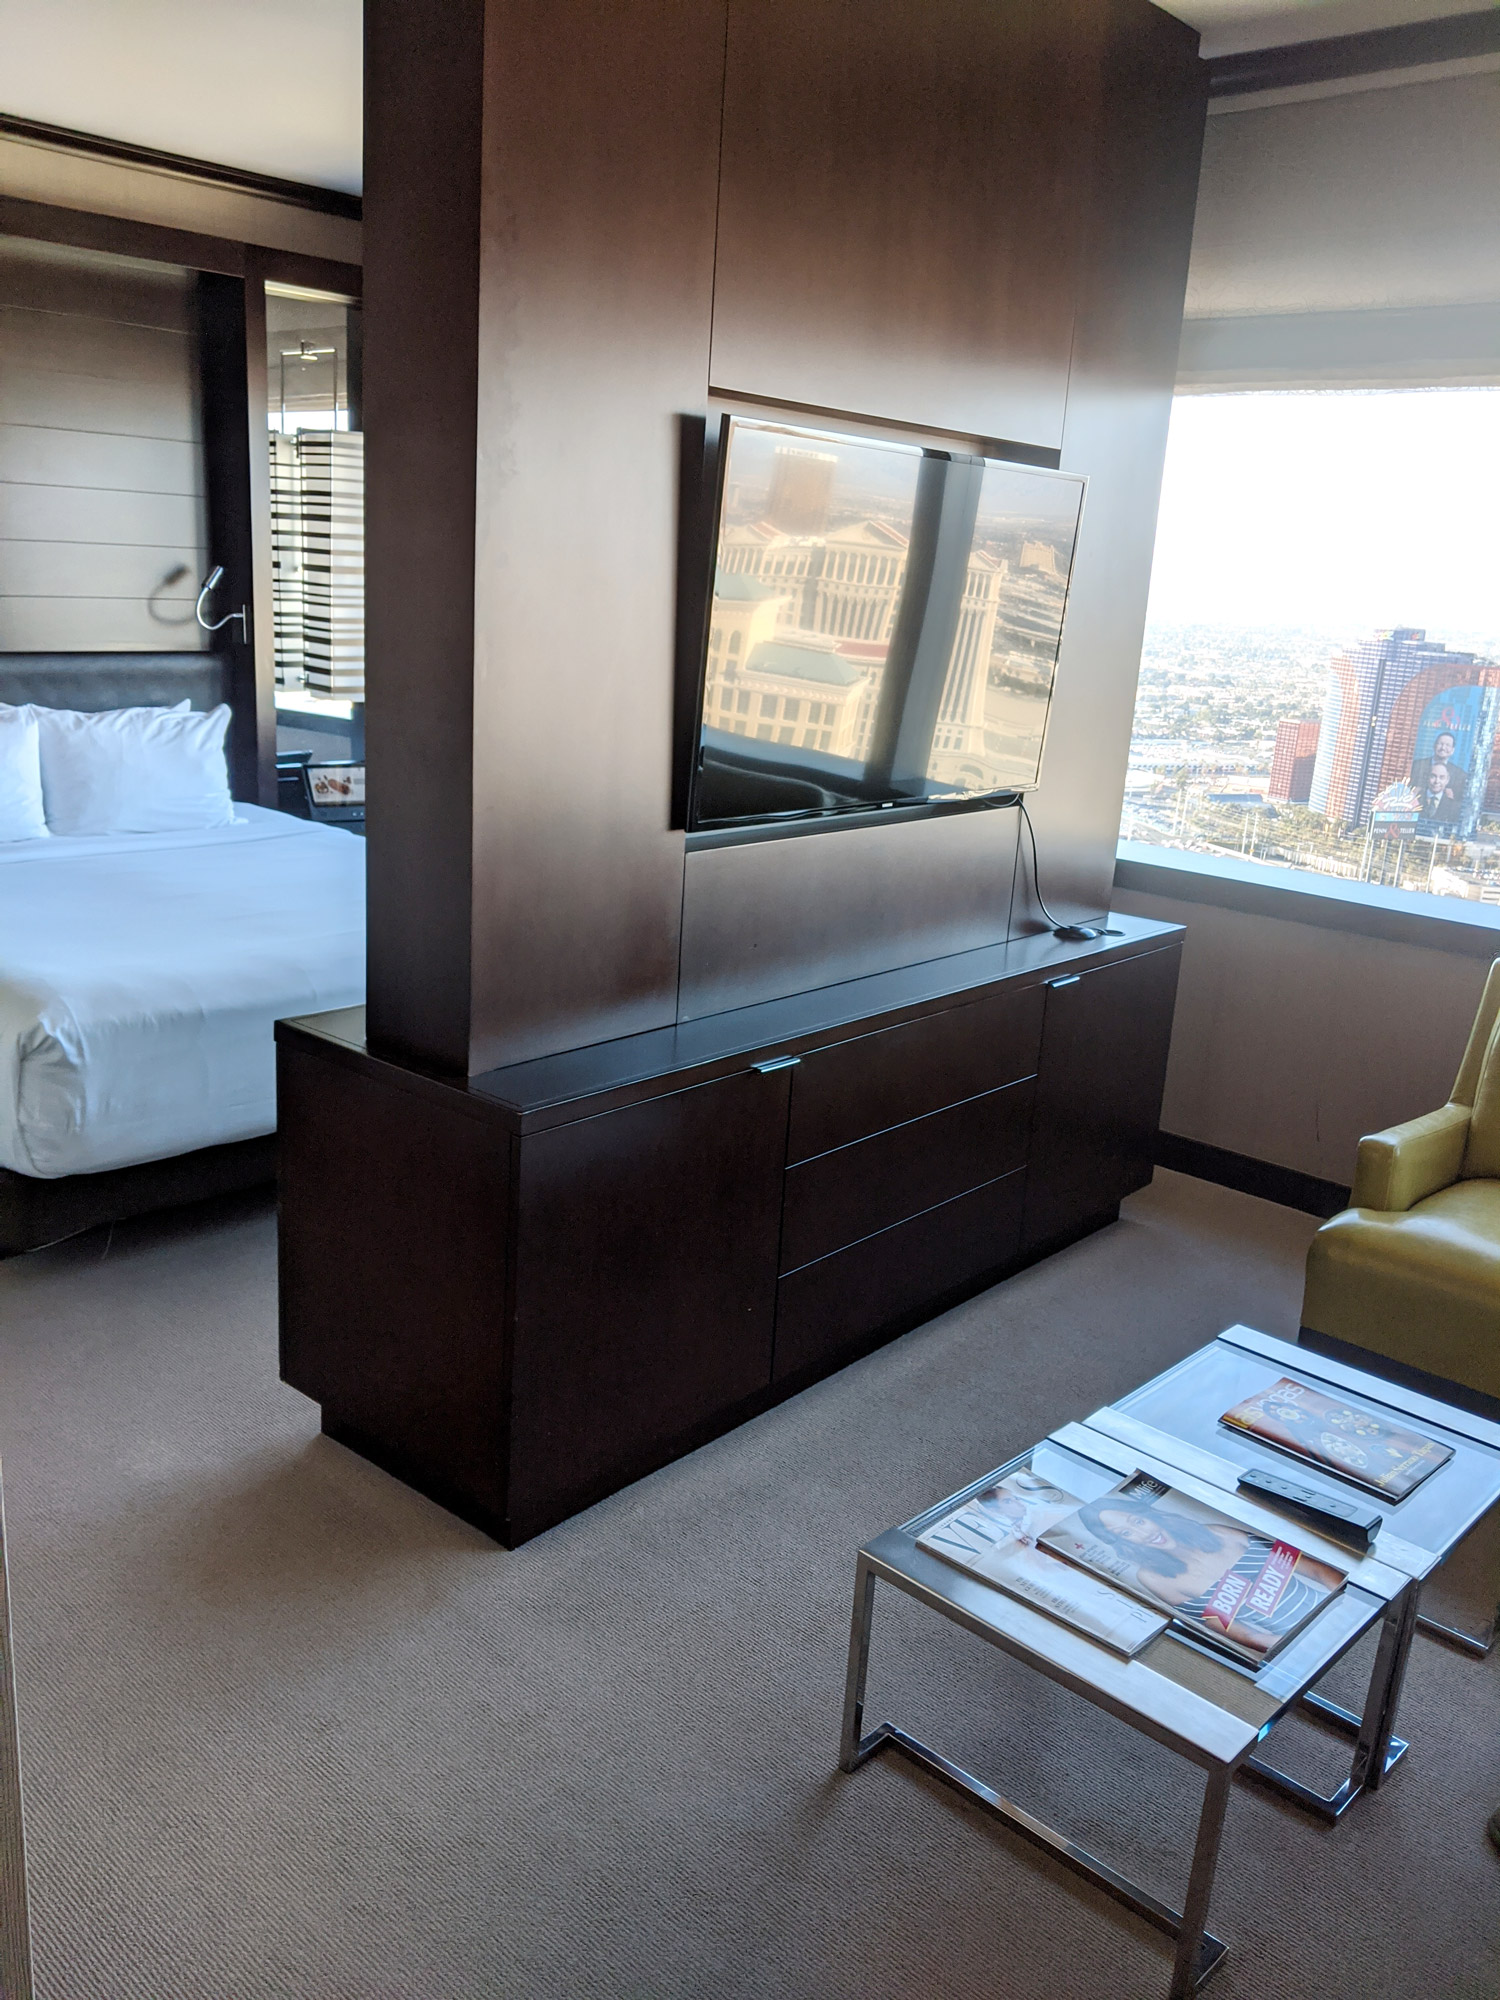 las-vegas-vdara-studio-parlour-double-room-review-10